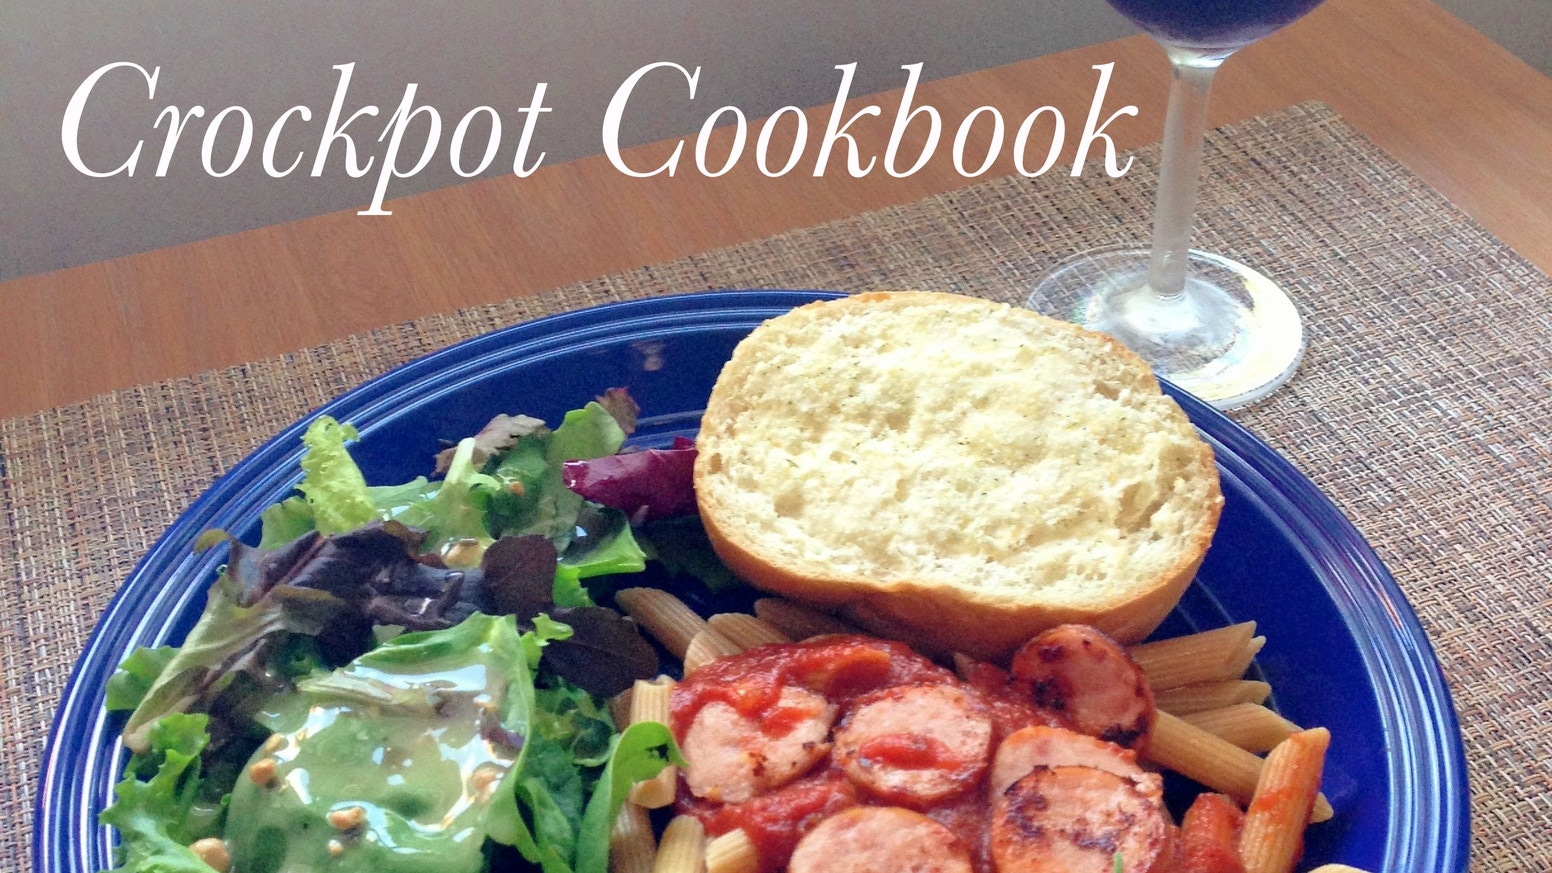 Cooking without a kitchen by brittany miller kickstarter simple delicious crockpot microwave meals for when mom kicks you out easy prep way better than ramen ios pdf soft or hardcover forumfinder Choice Image